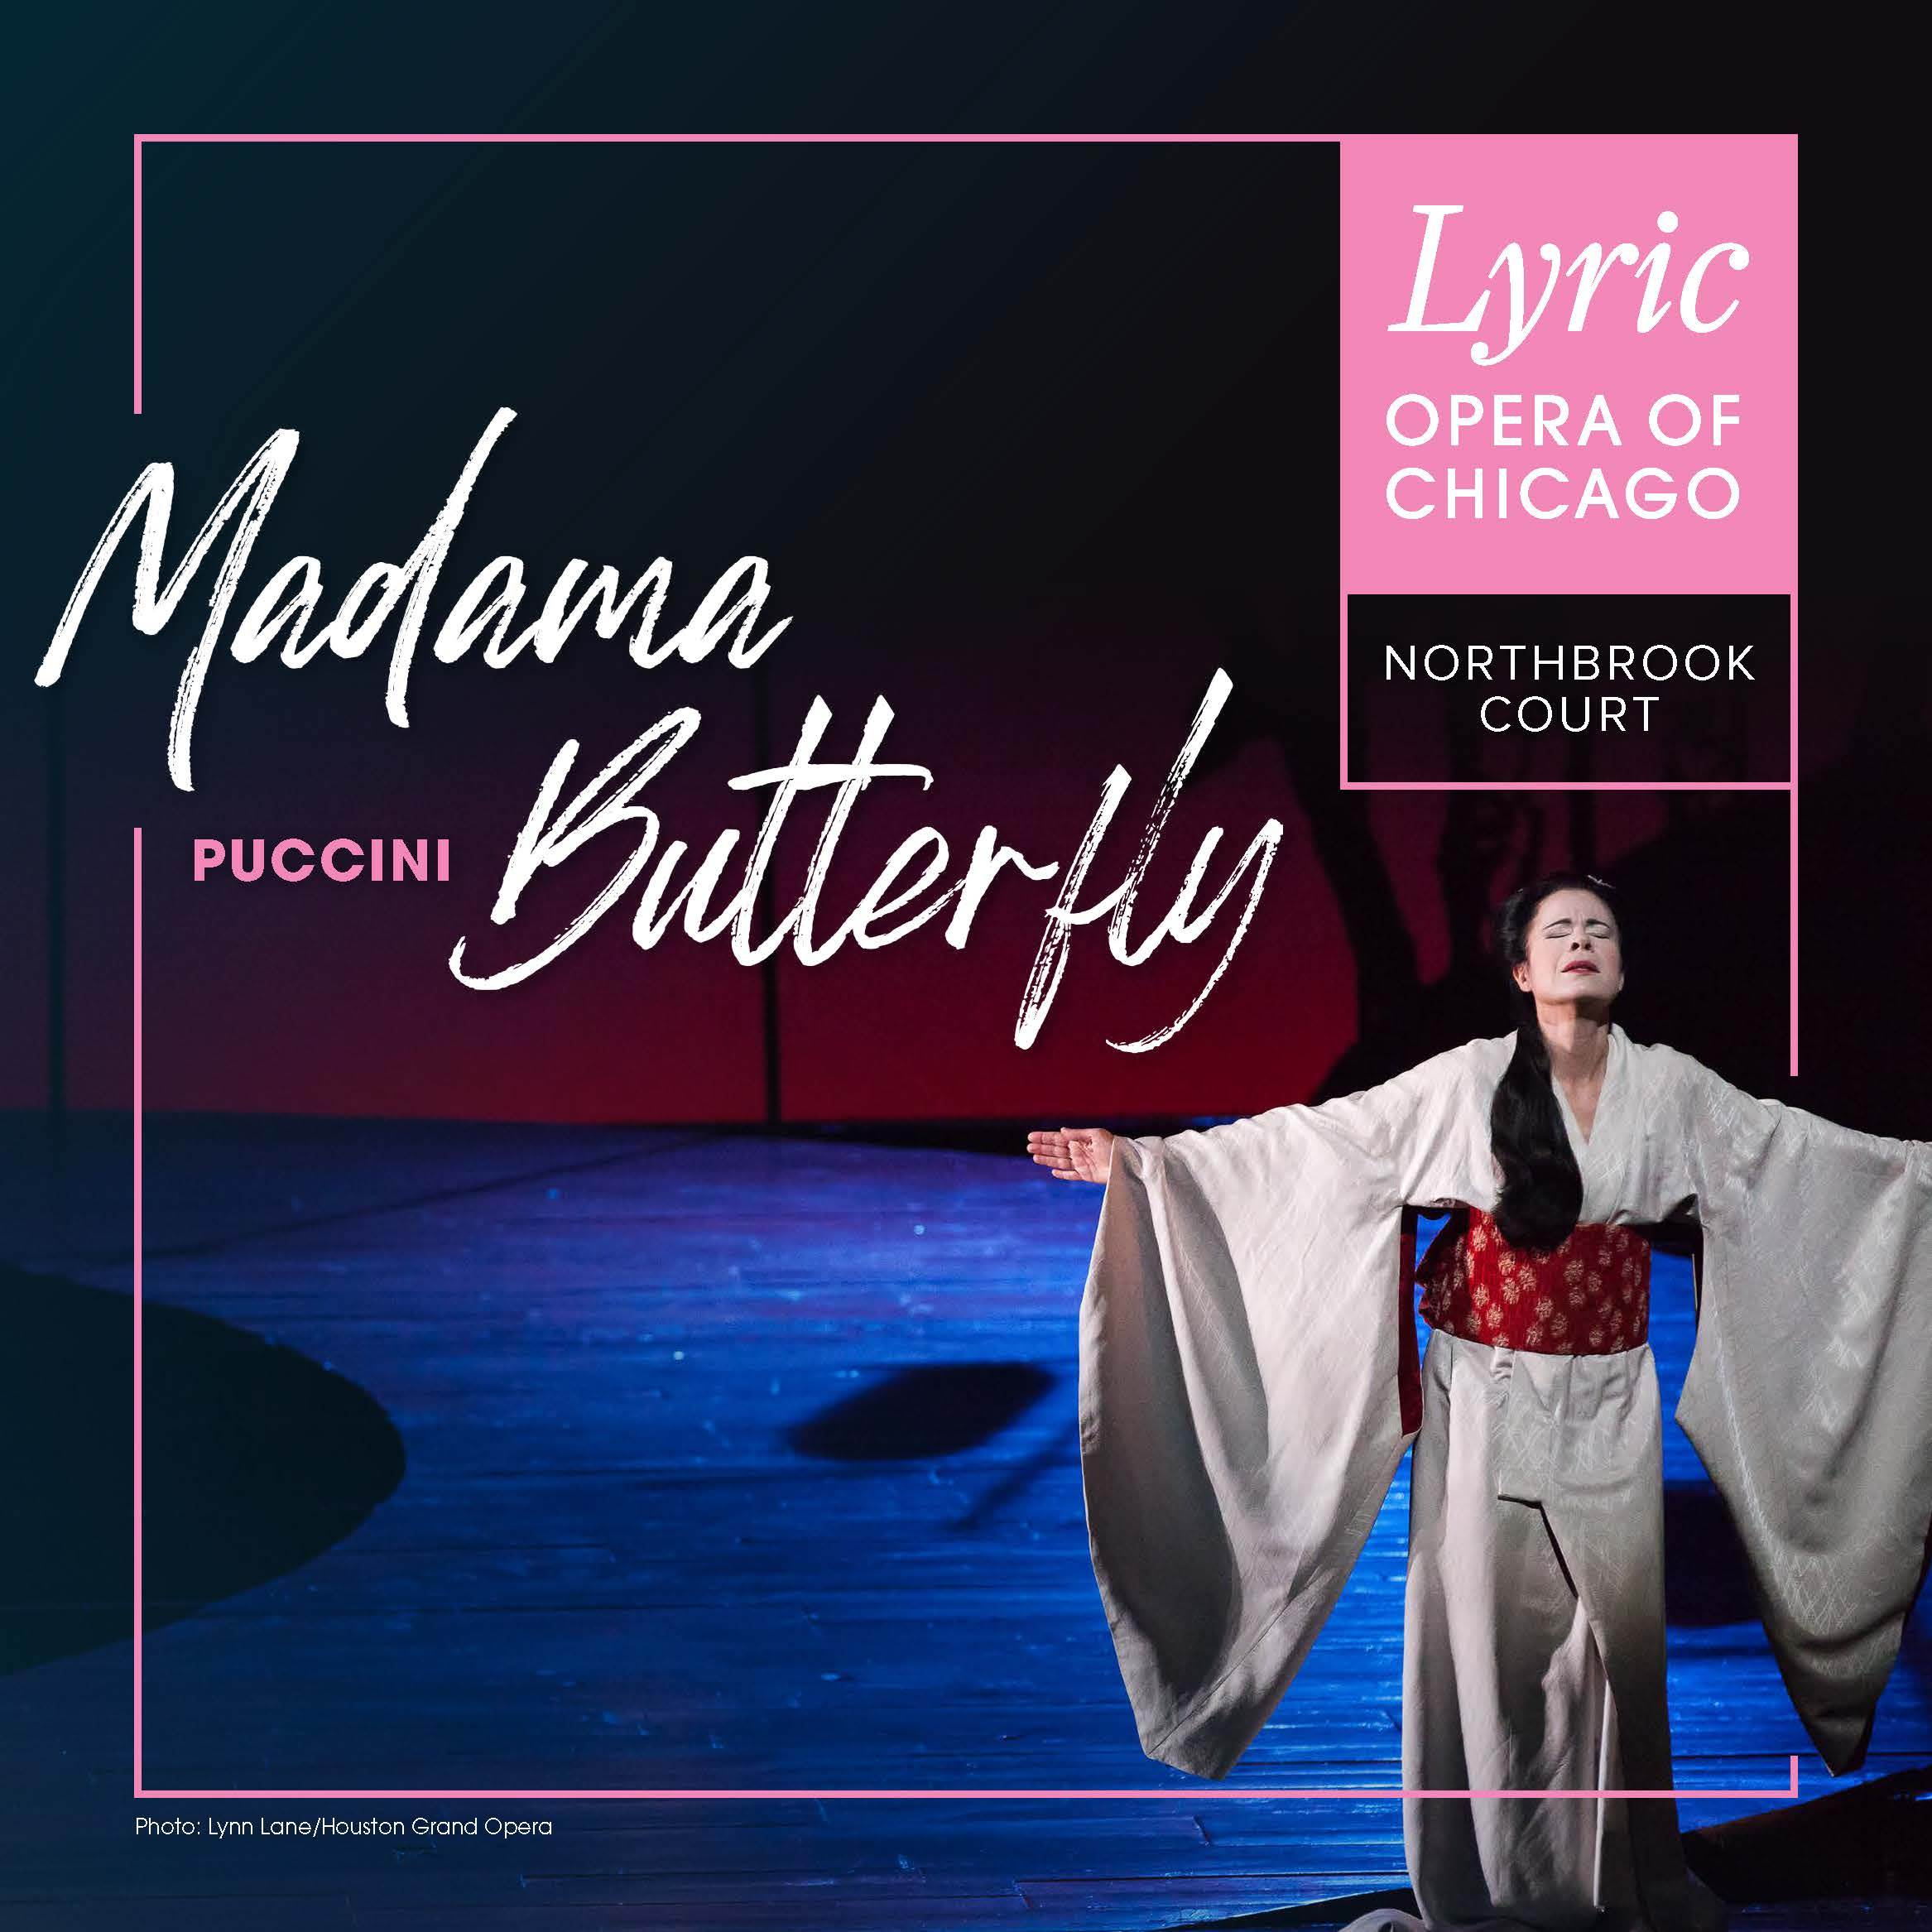 Madame Butterfly - woman standing on stage in white dress